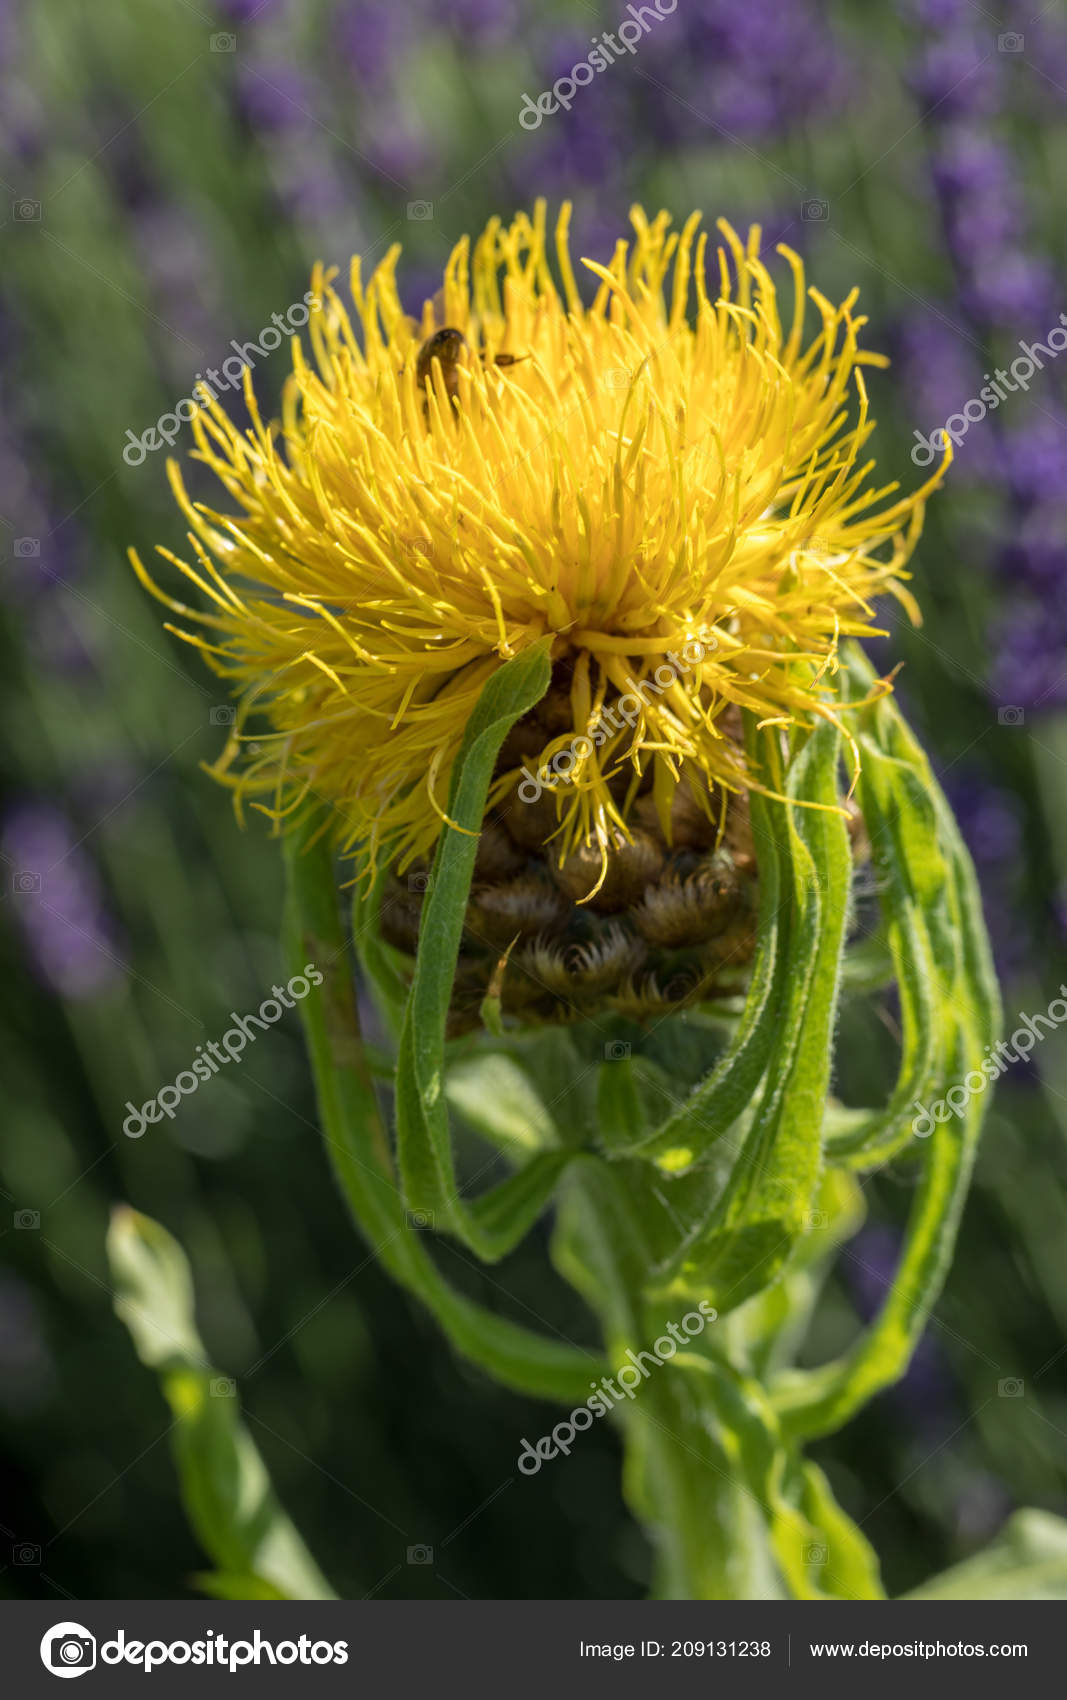 Blooming Yellow Star Thistle Flowers Lavender Field Background